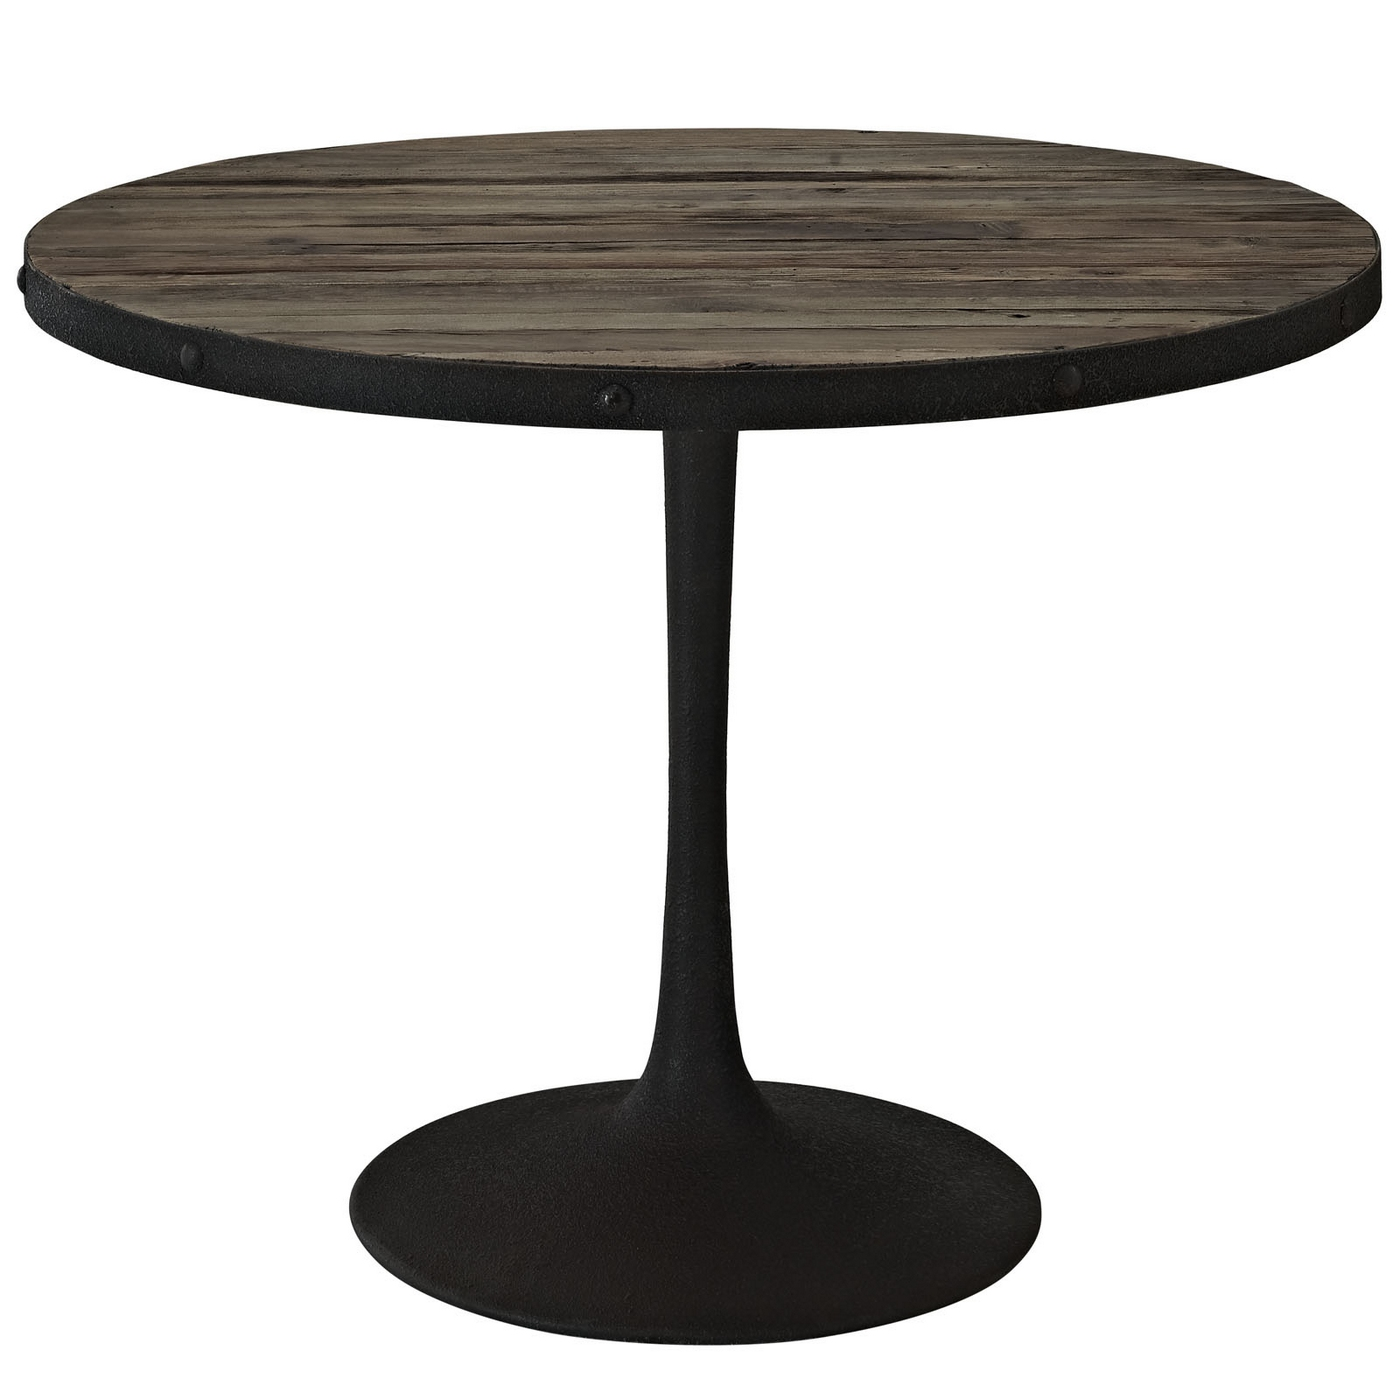 "Wood Round Dining Table: Drive Rustic 40"" Round Wood Top Dining Table With Cast"